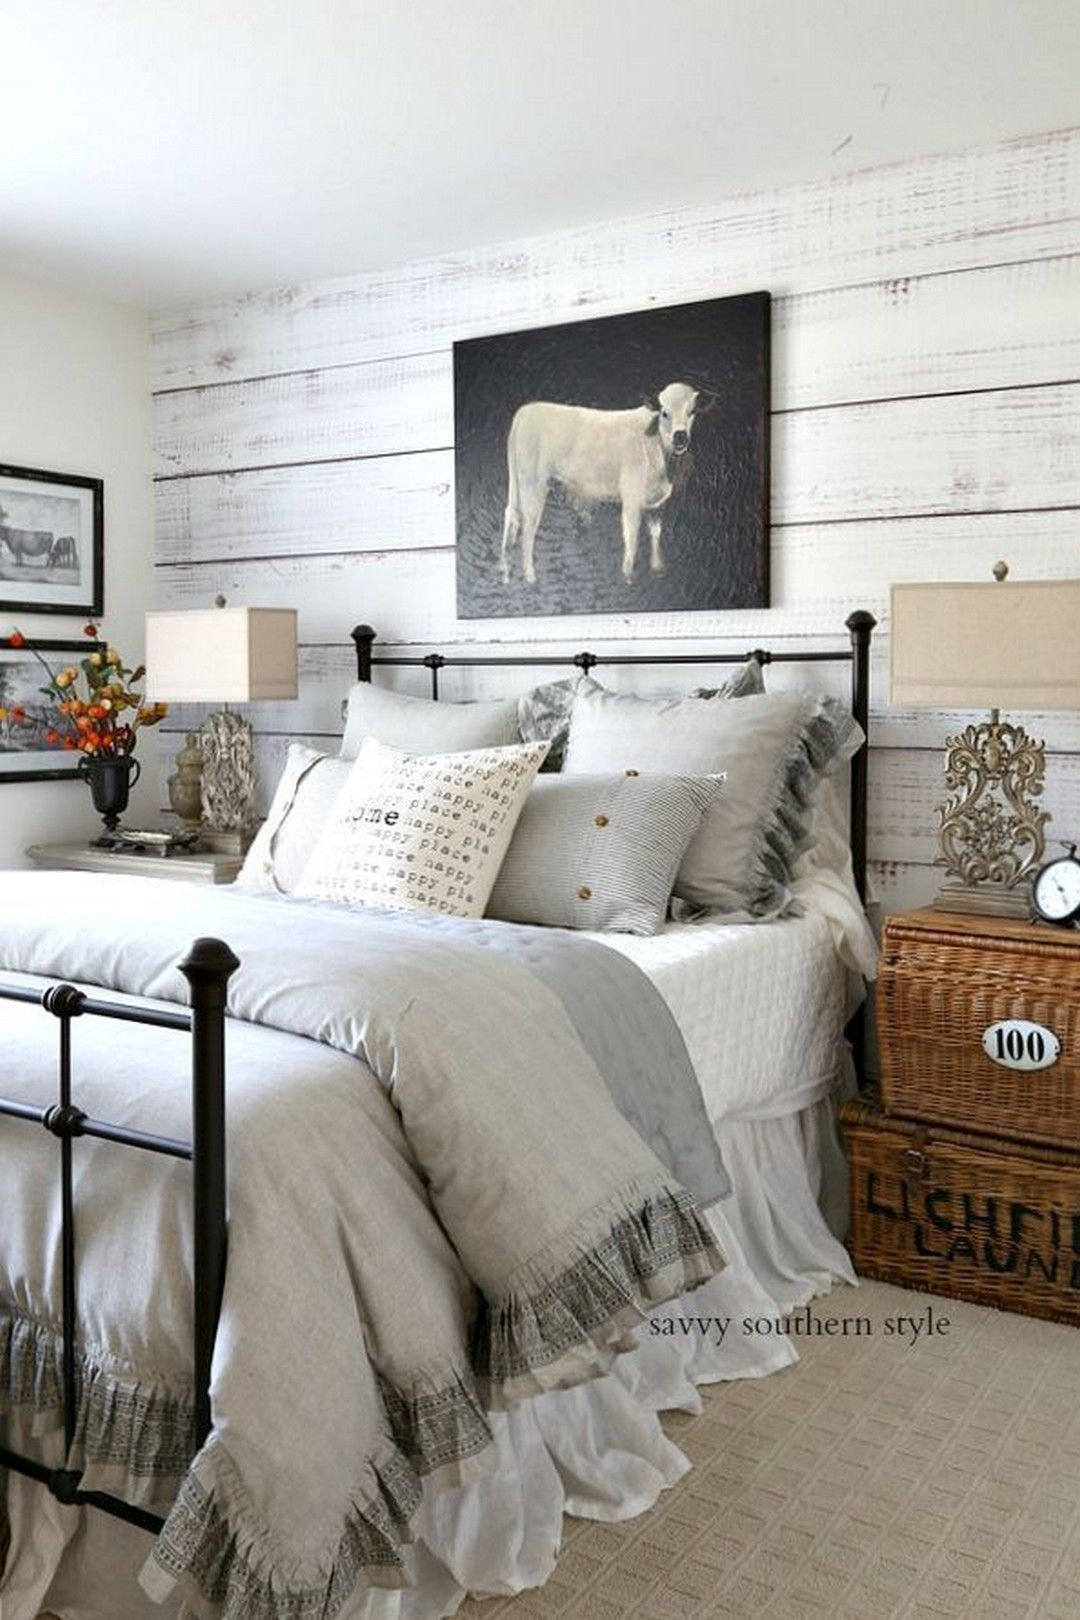 44 Inspiring Living Room Farmhouse Style Decorating Ideas images